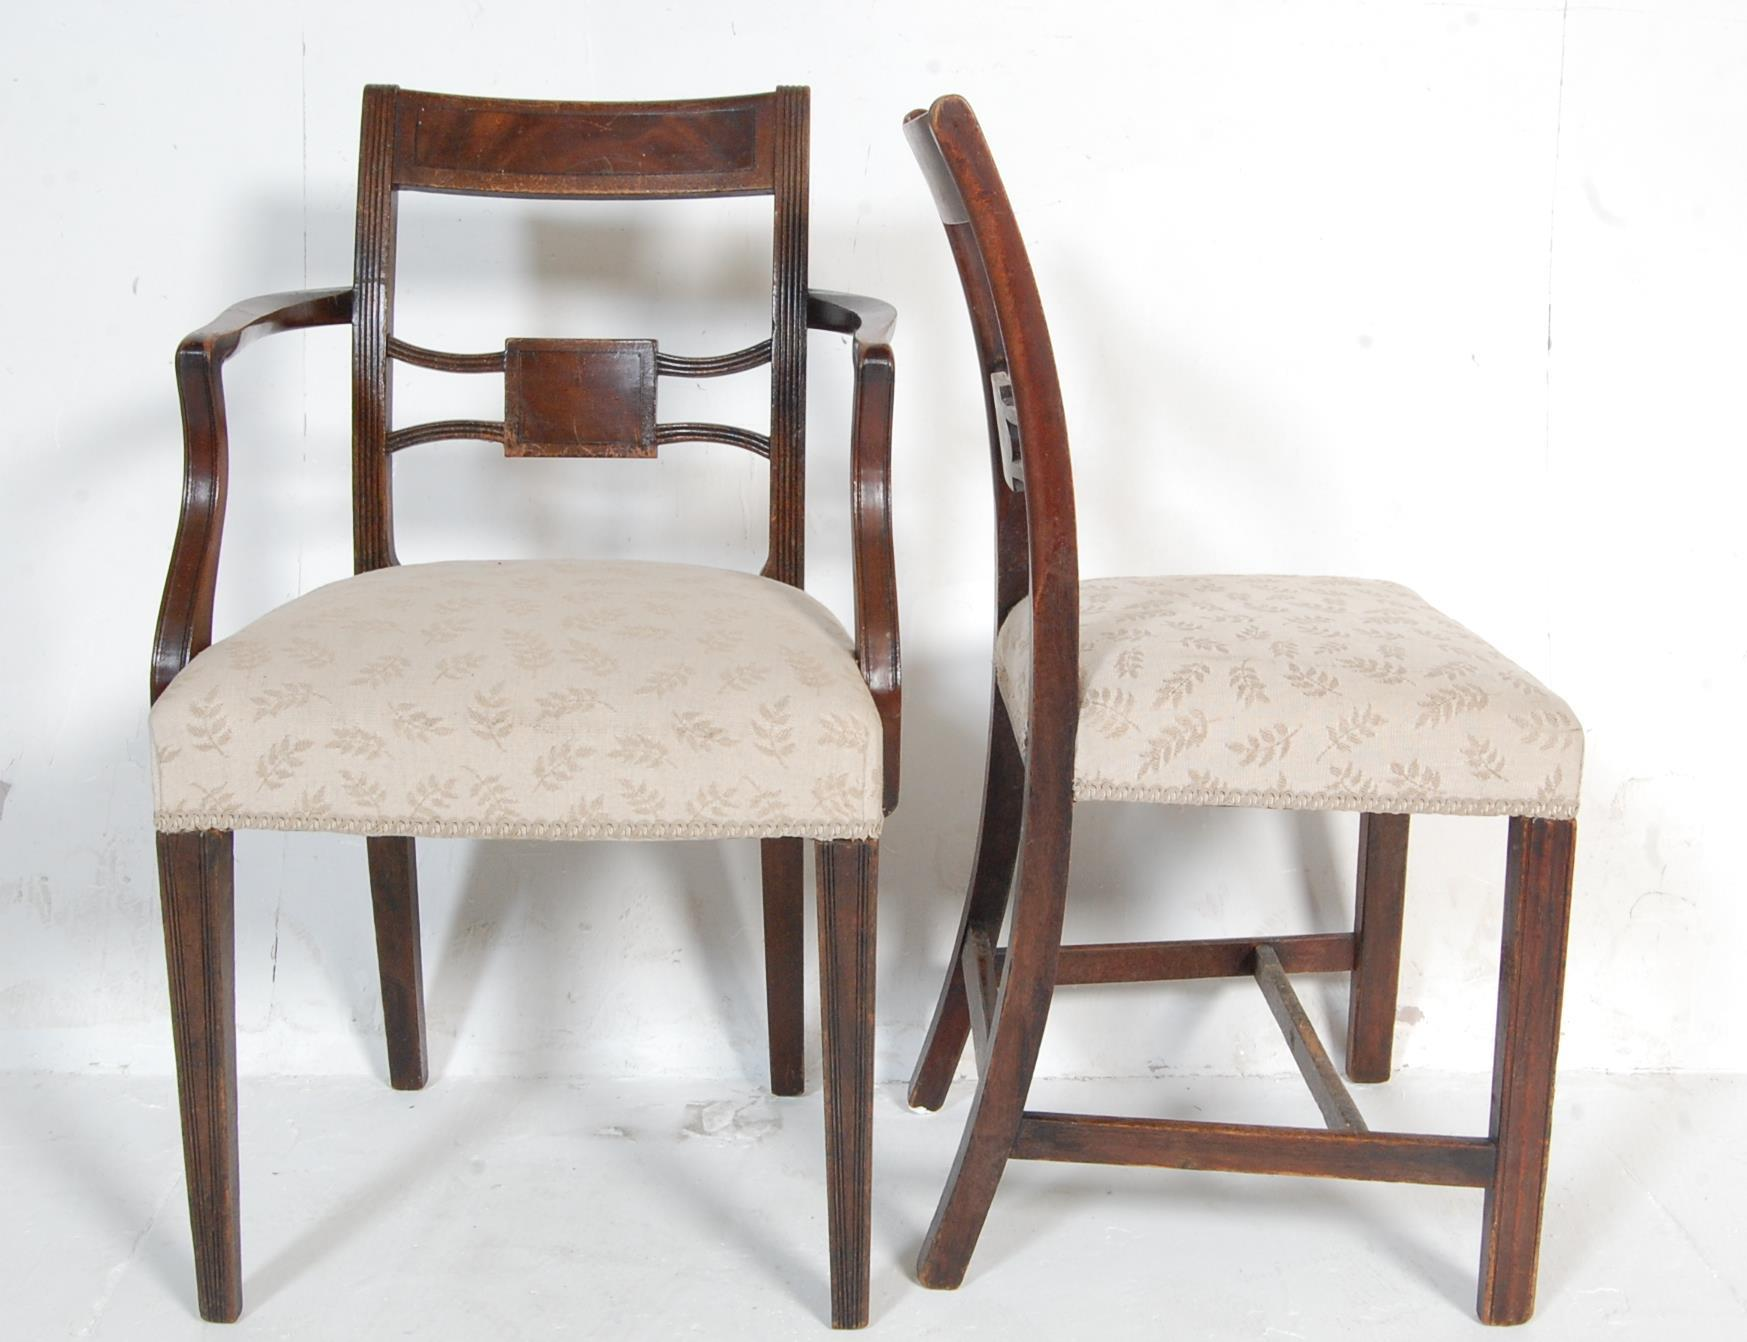 AN ANTIQUE EDWARDIAN REGENCY REVIVAL HARLEQUIN SET OF SIX CHAIRS - Image 6 of 7